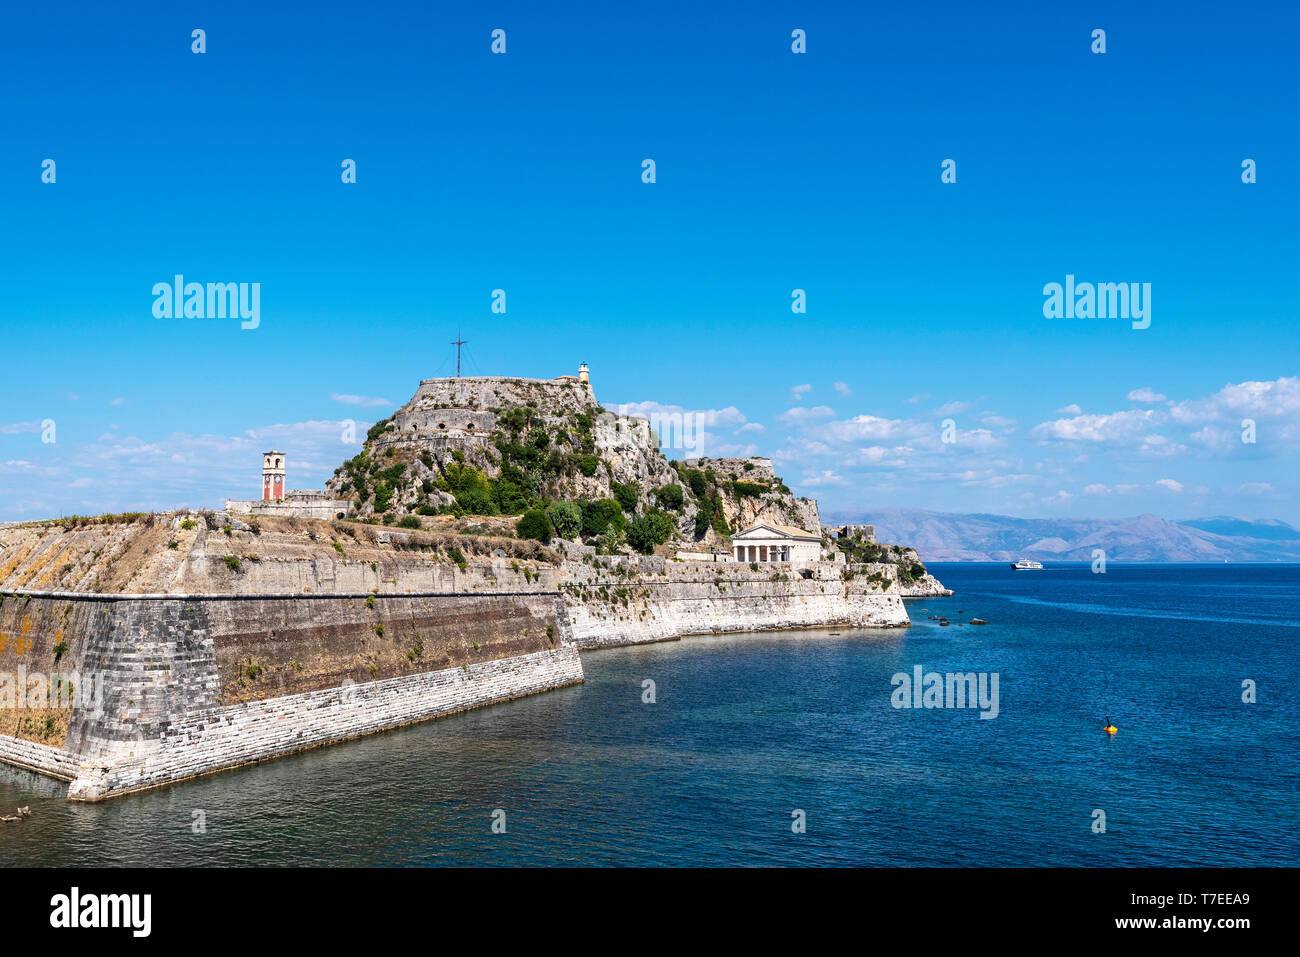 old fortress, Kerkyra, Corfu Island, Ionian Islands, Mediterranean Sea, Greece - Stock Image